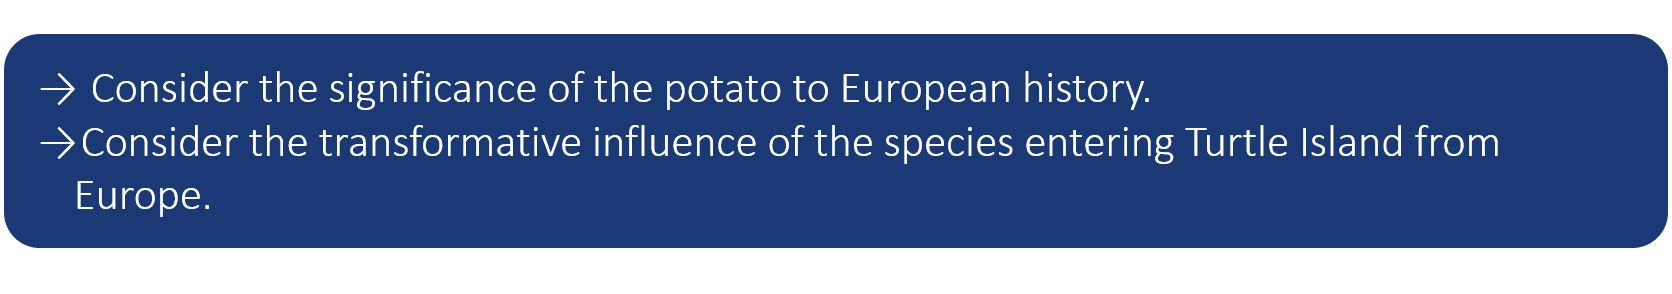 Consider the significance of the potato to European history. Consider the transformative influence of the species entering Turtle Island from Europe.